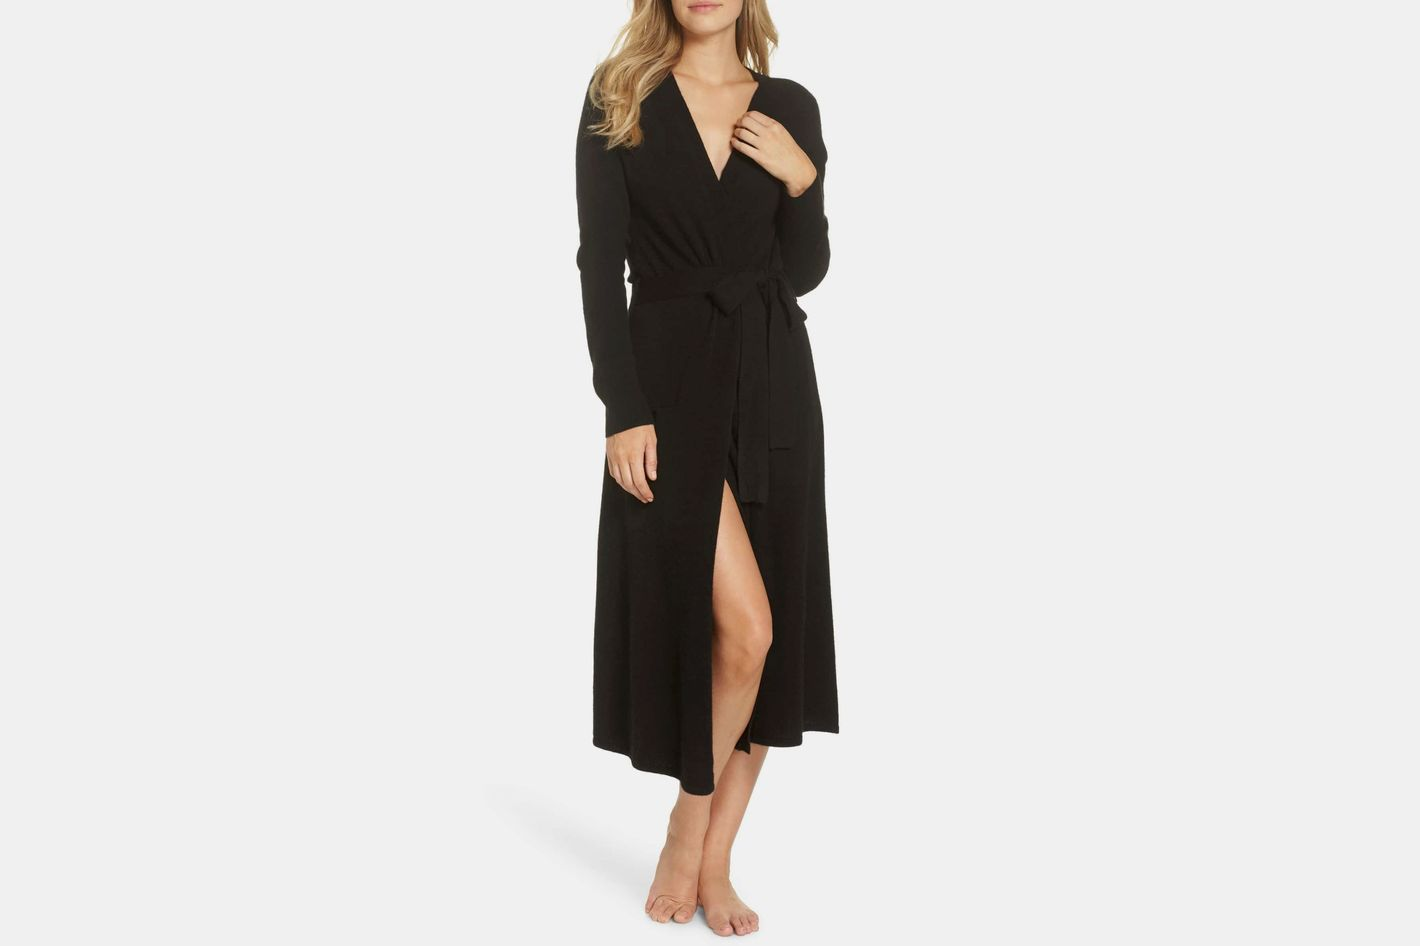 The Best Cashmere Robe for Women 4c7a36a70